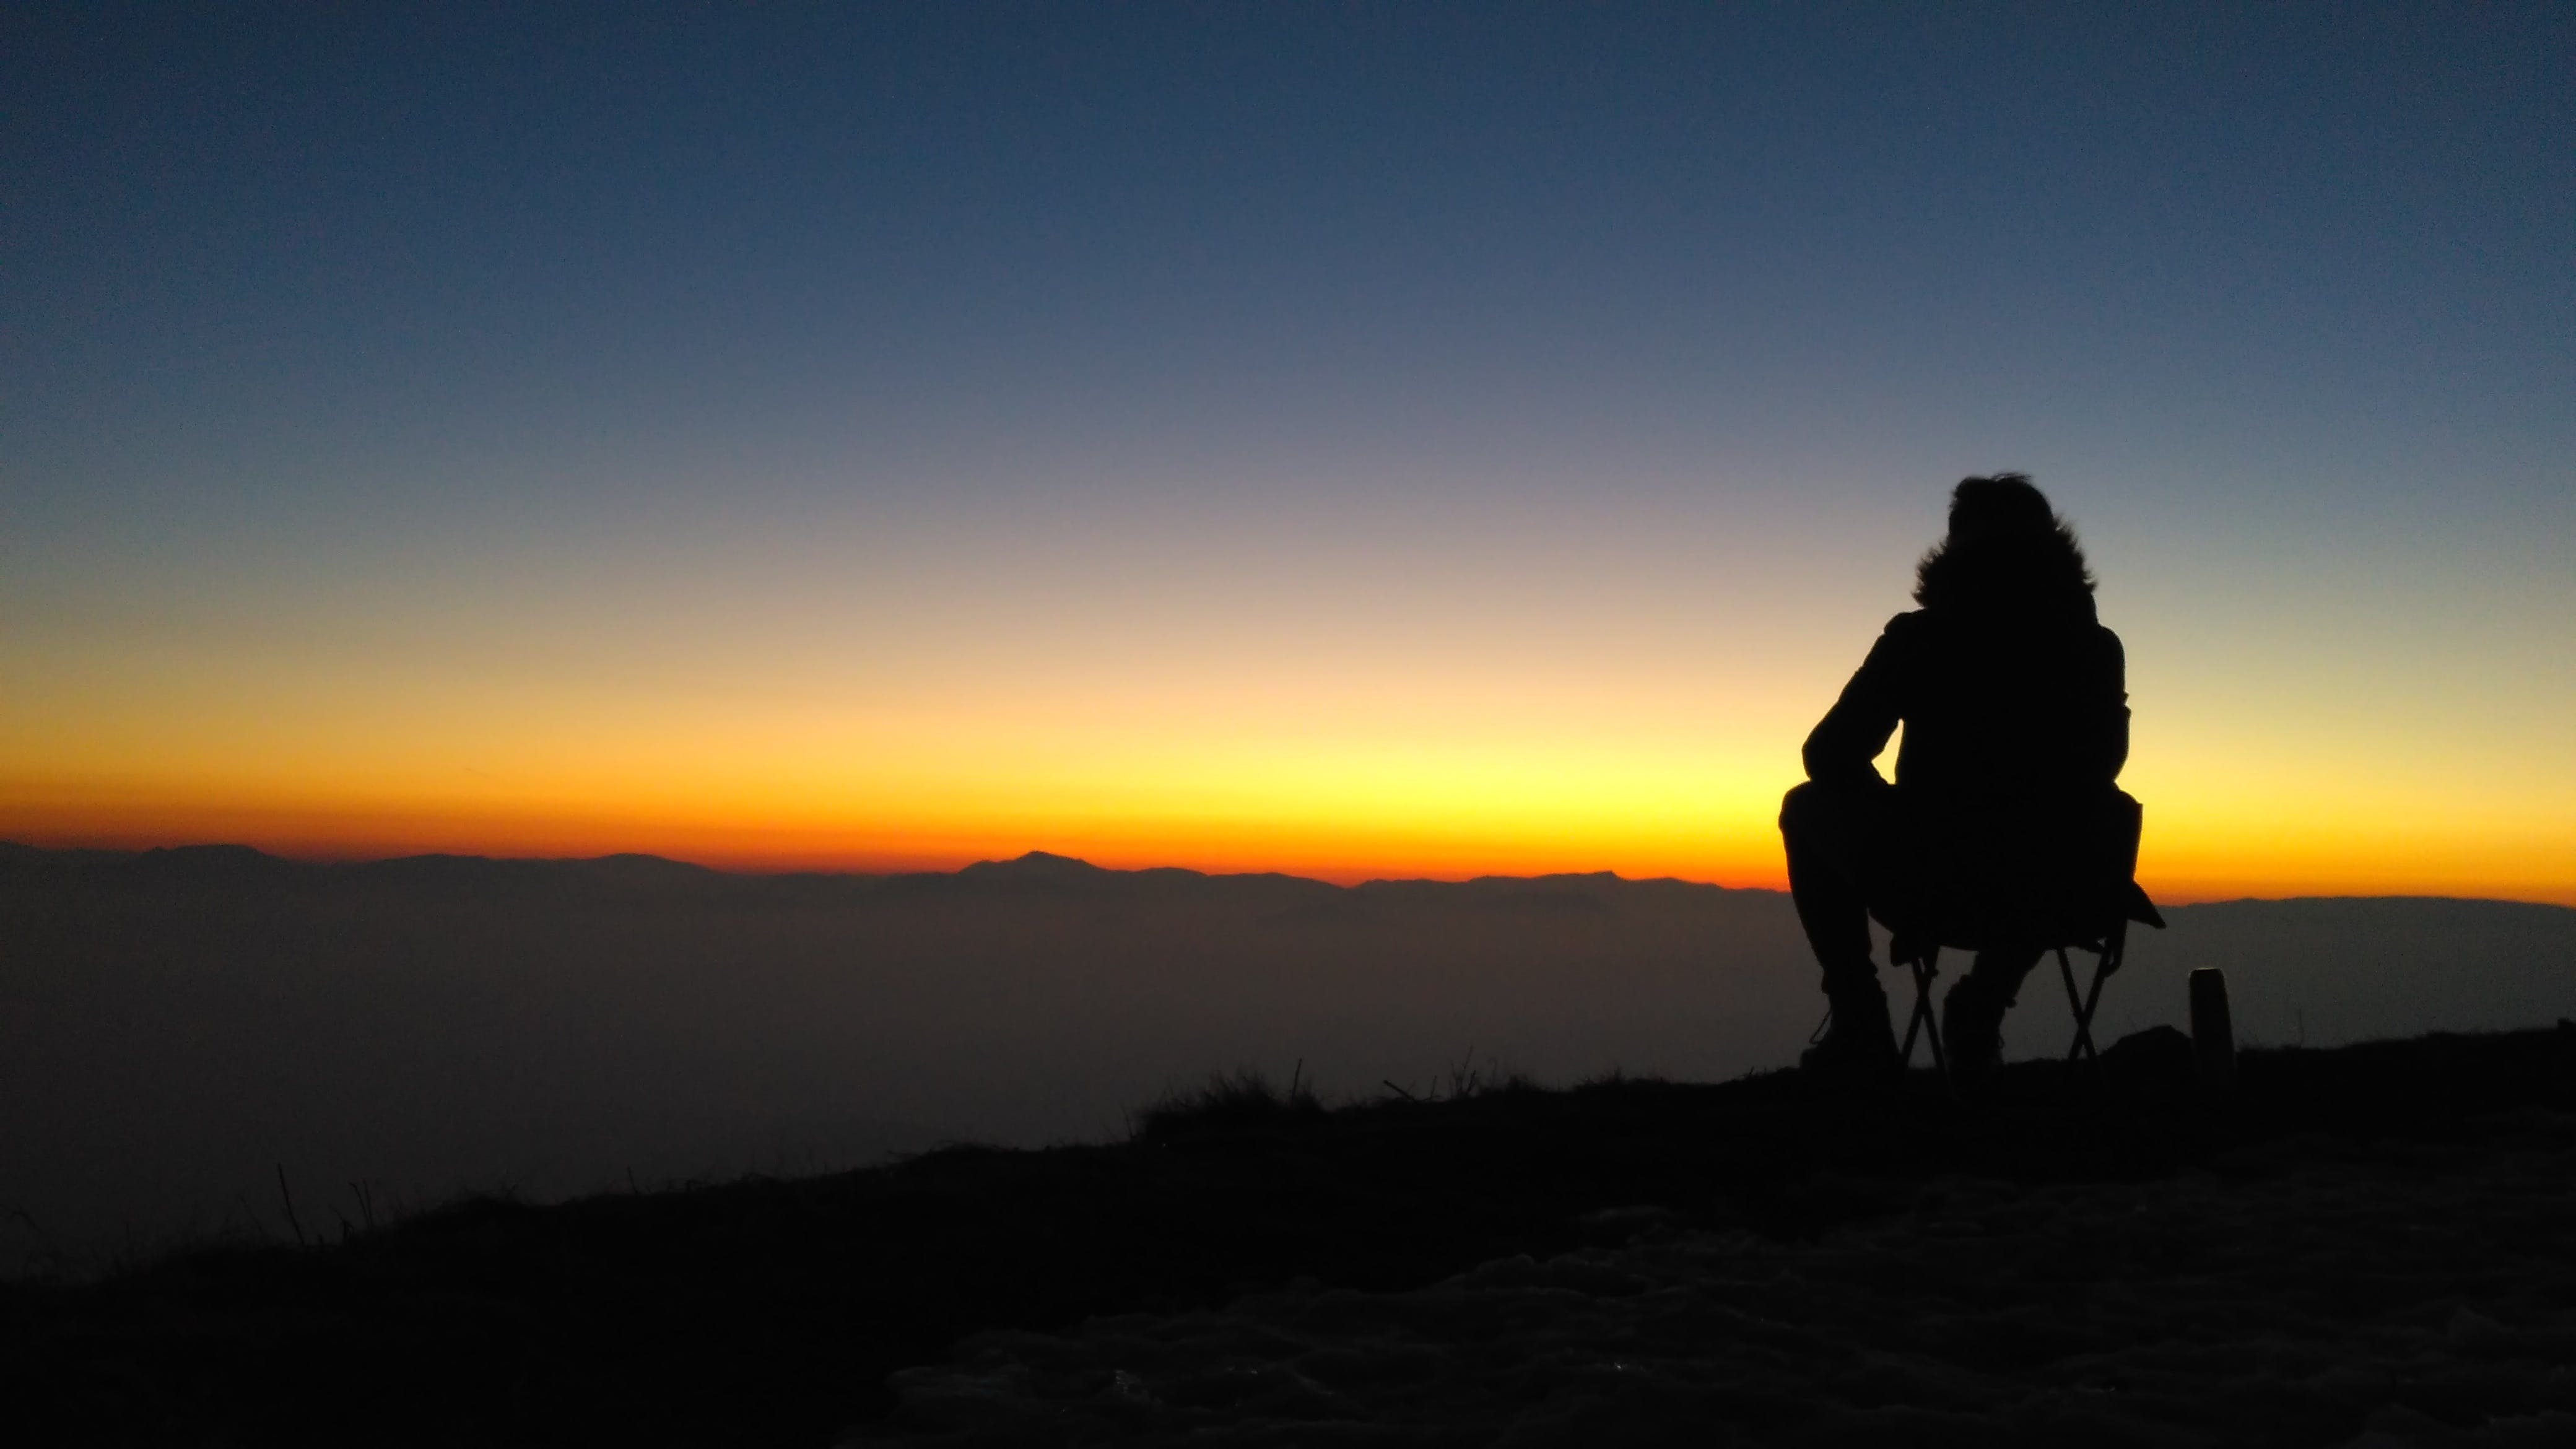 Silhouette Photography of Person Sitting on Chair